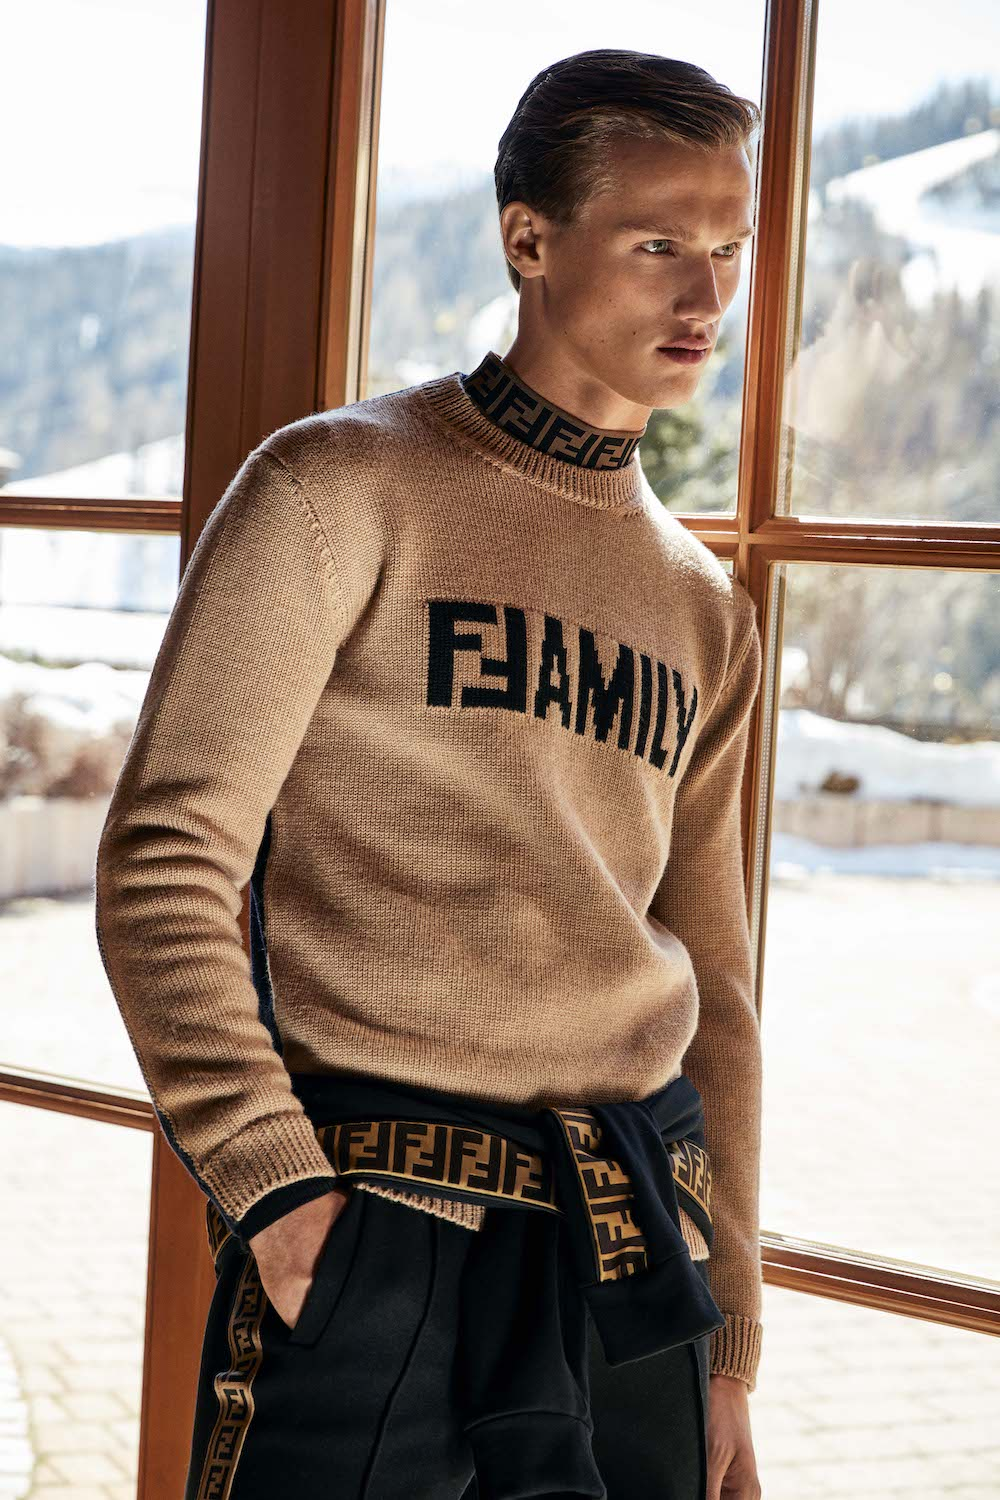 16 Leisurewear Fall Winter 2018 Fall Winter 2018: FENDI Leisurewear Collection